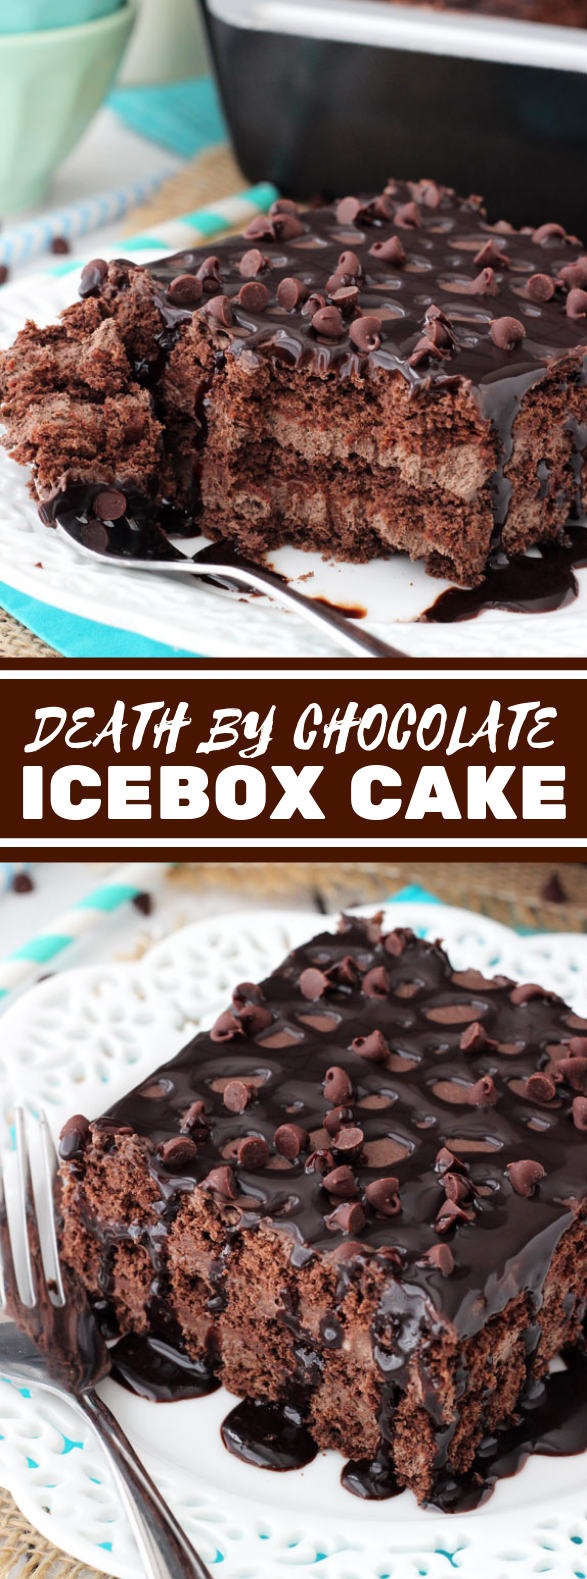 DEATH BY CHOCOLATE ICEBOX CAKE #desserts #sweets